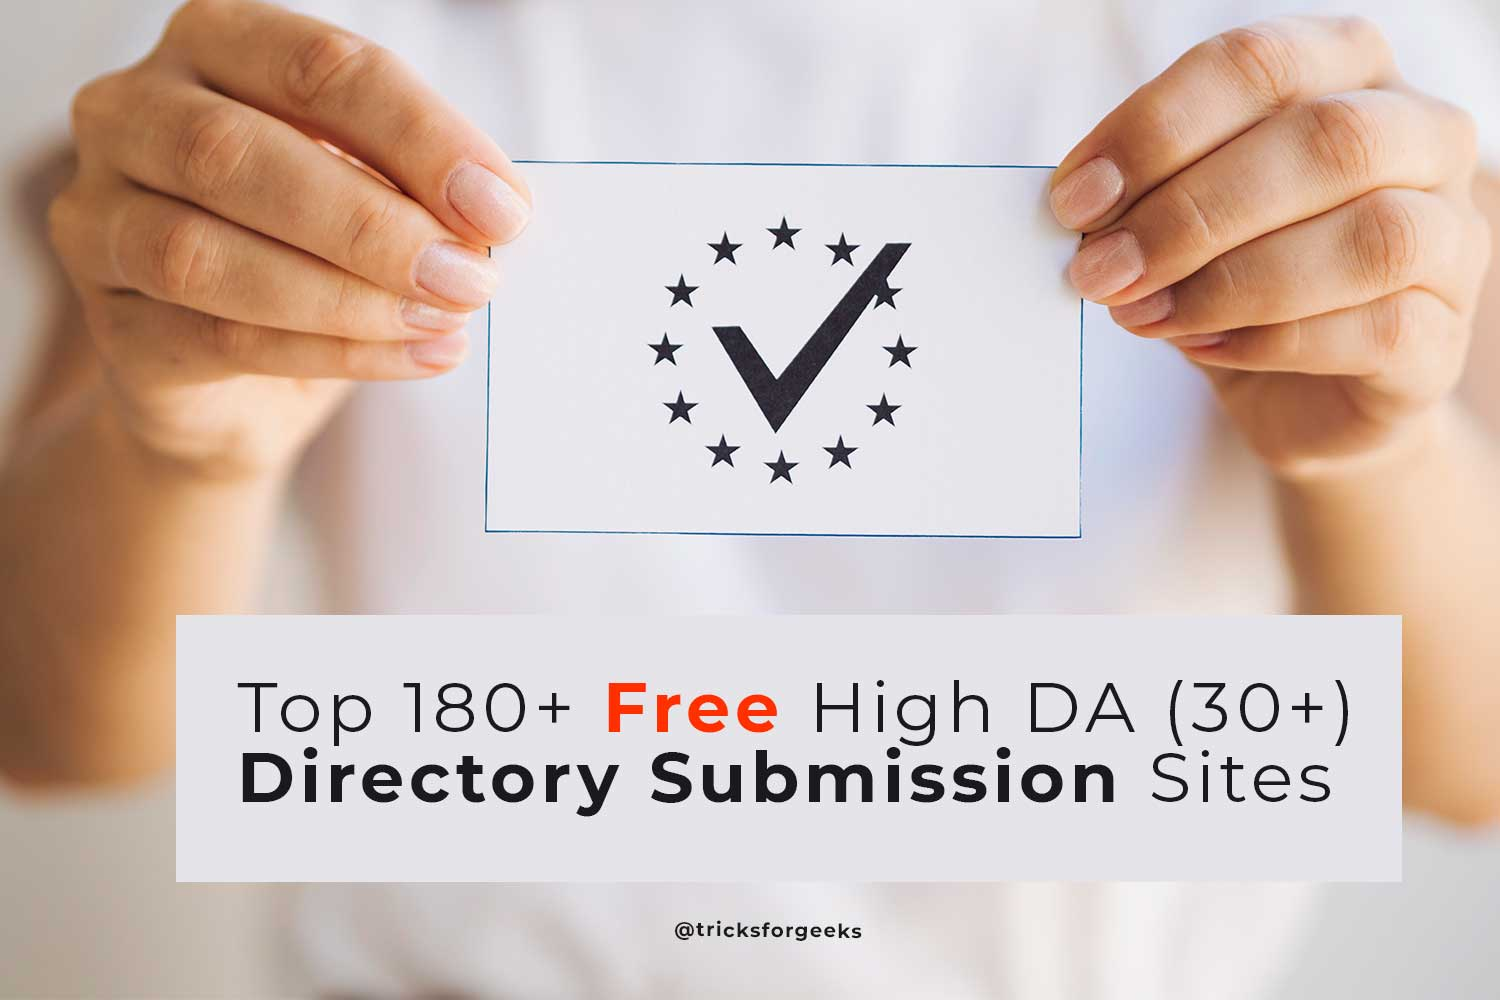 Free High DA Directory Submission Sites